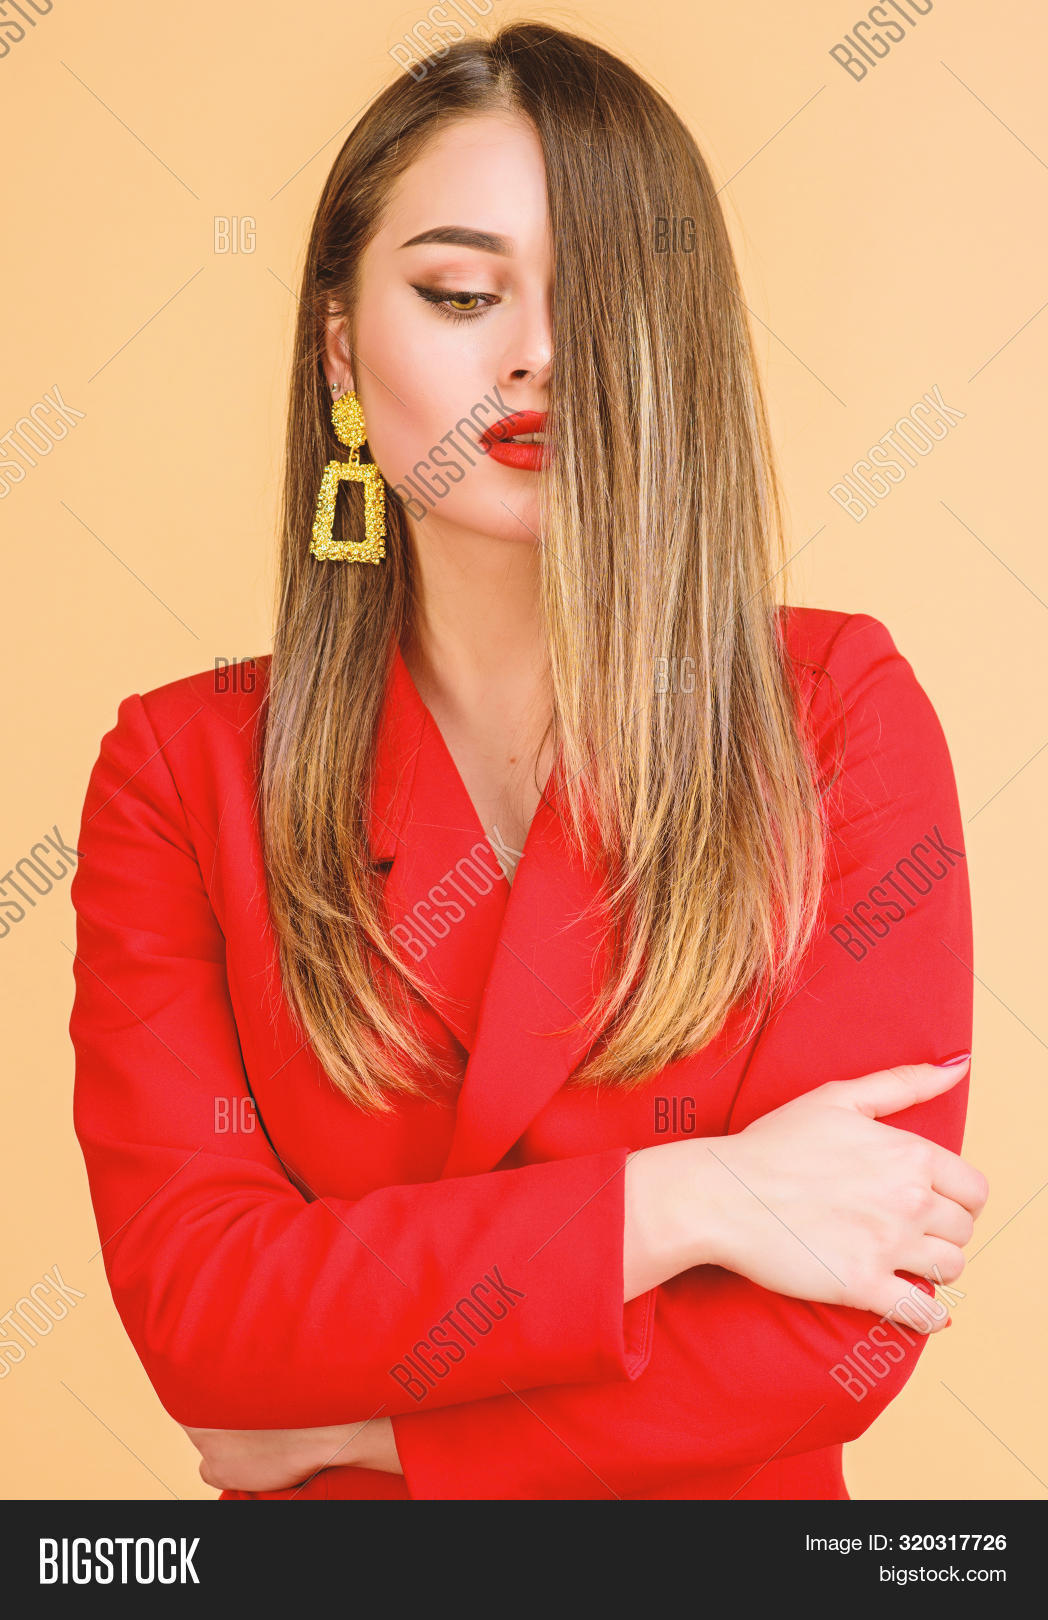 Pretty Woman Makeup Face Red Lips. Woman Wear Glamorous Earrings. Hairstyle And Hairdresser. Ombre H